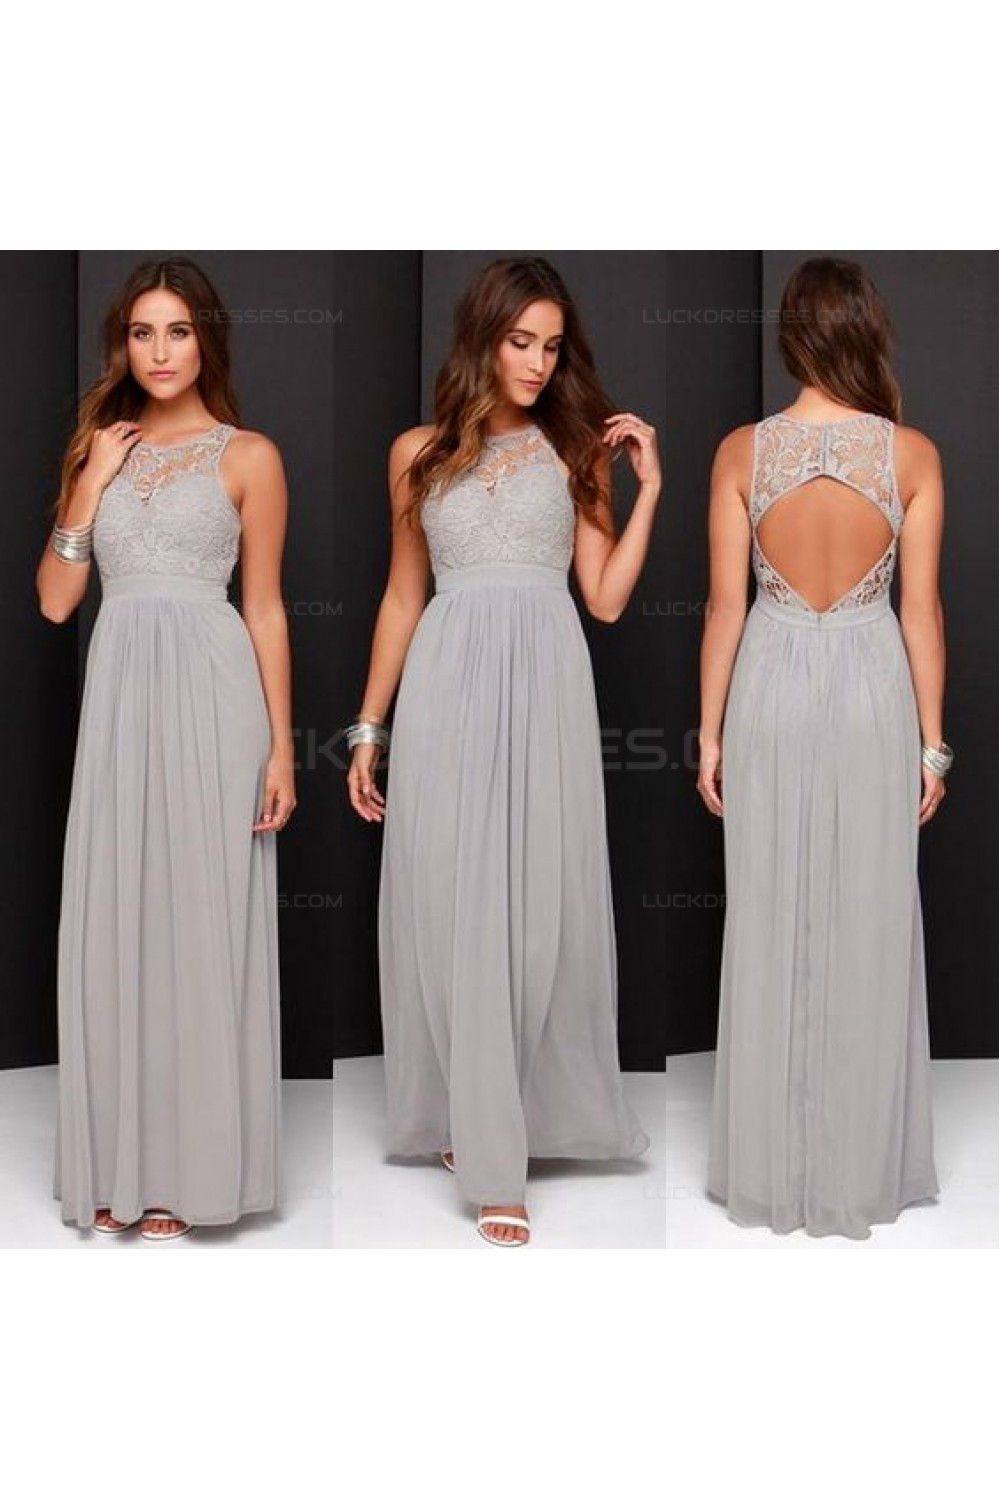 Grey Chiffon Lace Floor Length Wedding Guest Dresses Bridesmaid Dresses 3010166